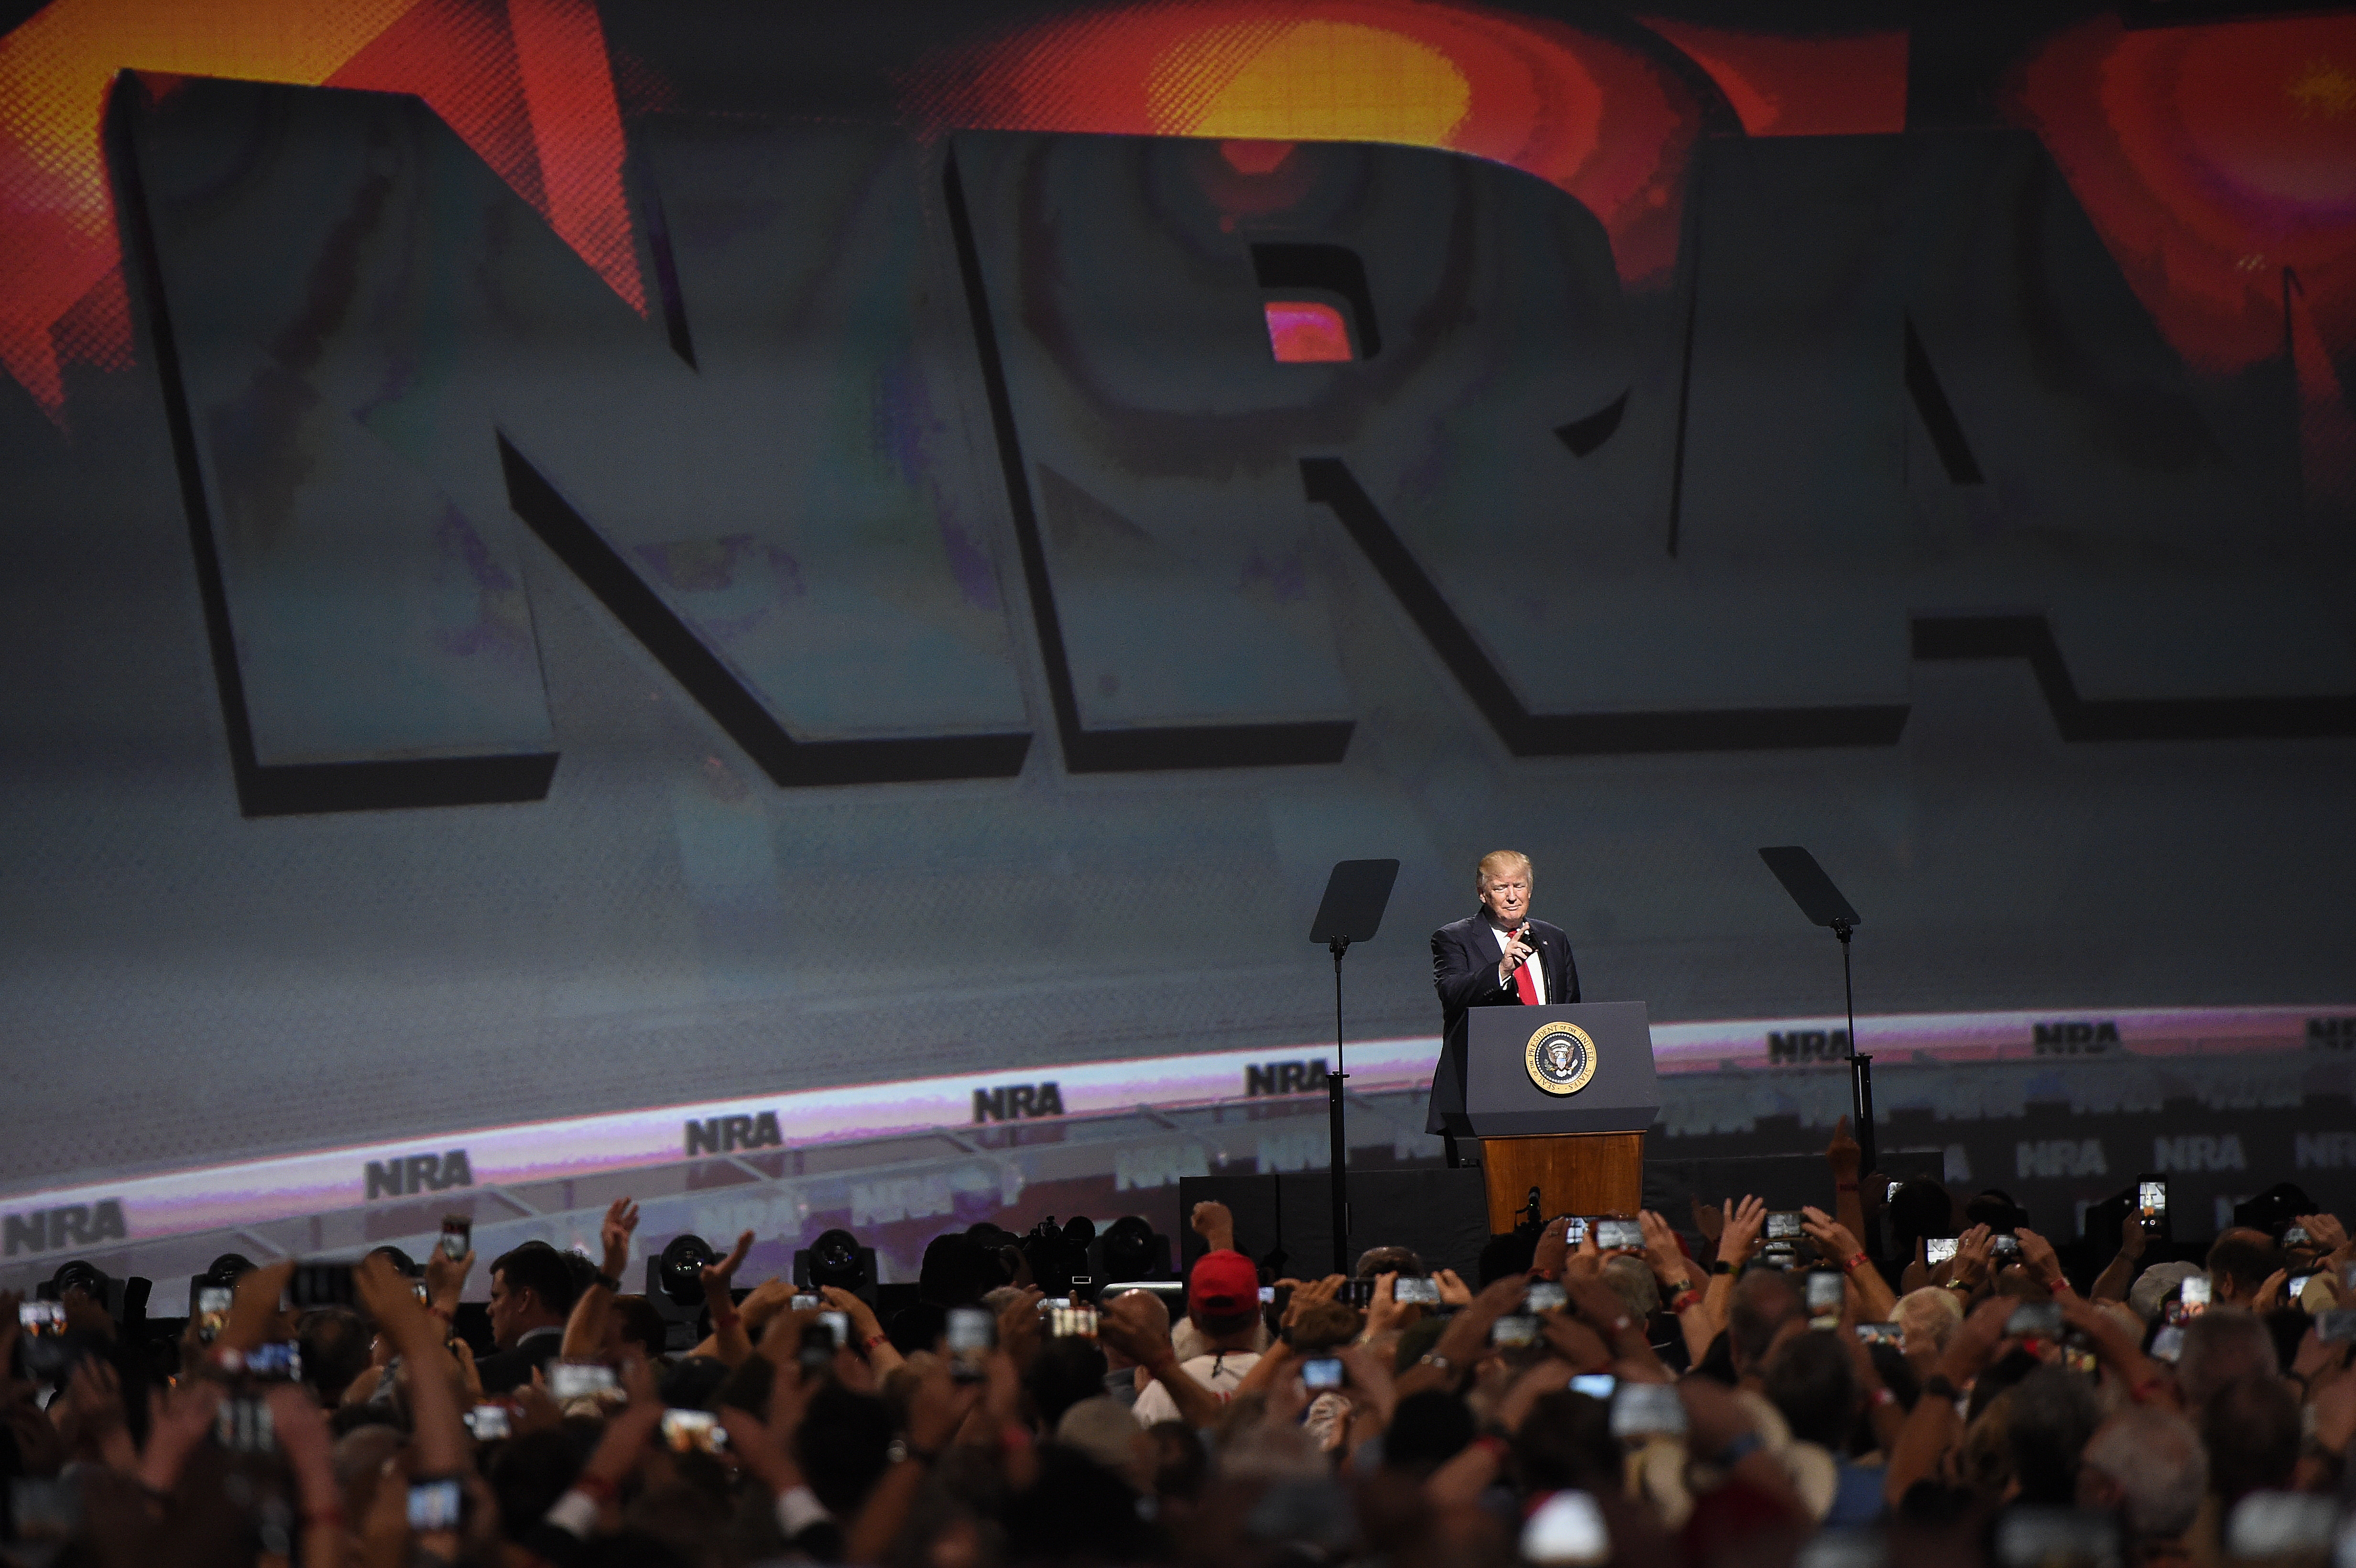 The National Rifle Association is no longer just an American